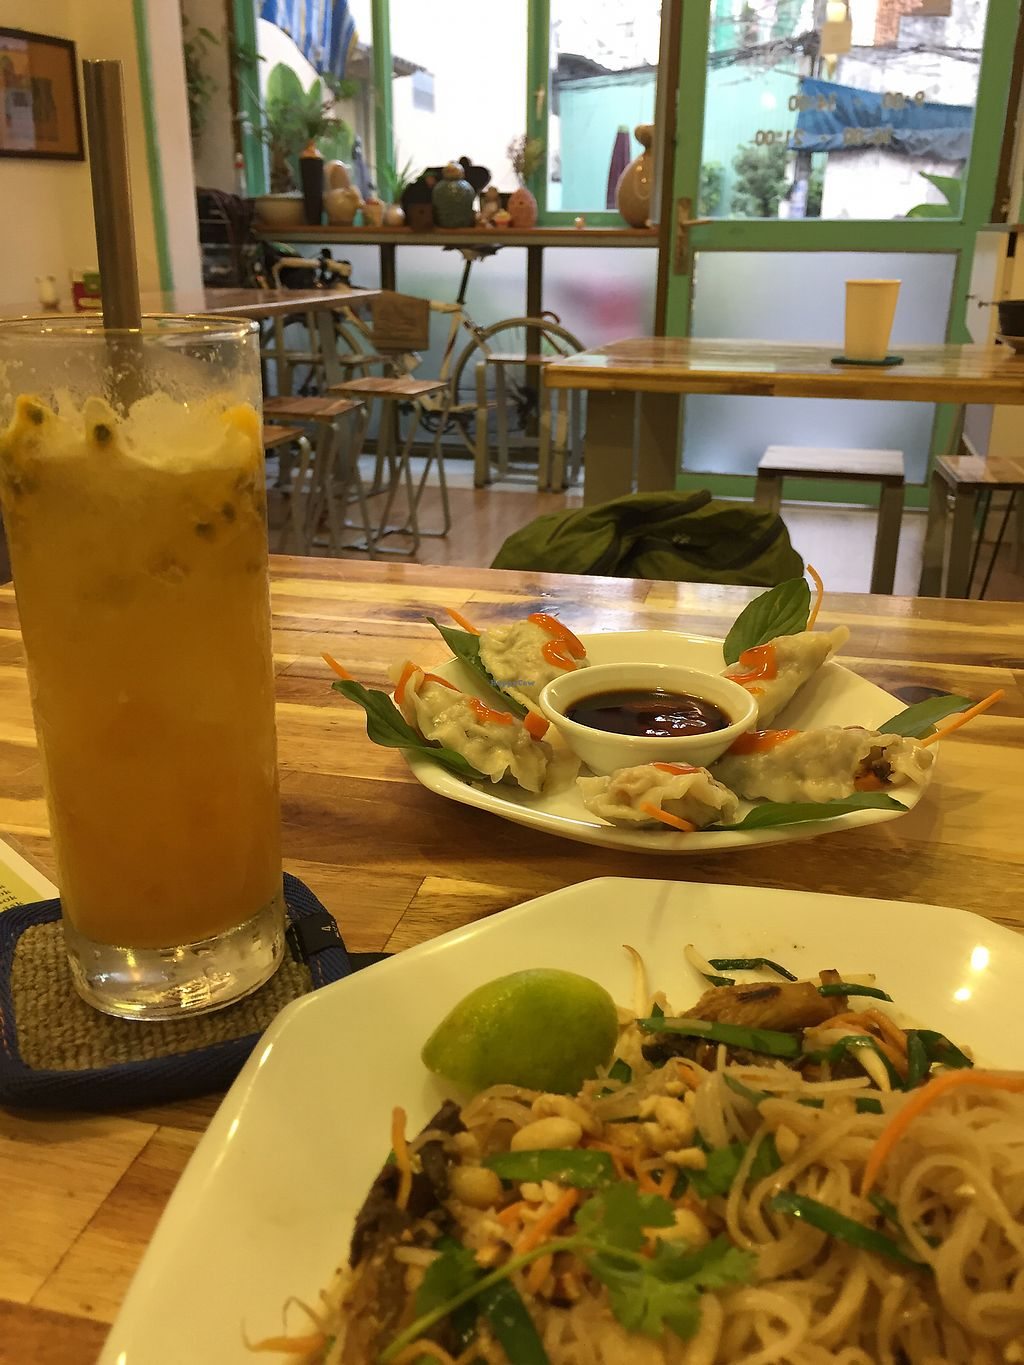 "Photo of Phuc Quang Chay  by <a href=""/members/profile/meislnicoline"">meislnicoline</a> <br/>Dumplings and pad Thai <br/> April 12, 2018  - <a href='/contact/abuse/image/83479/384292'>Report</a>"